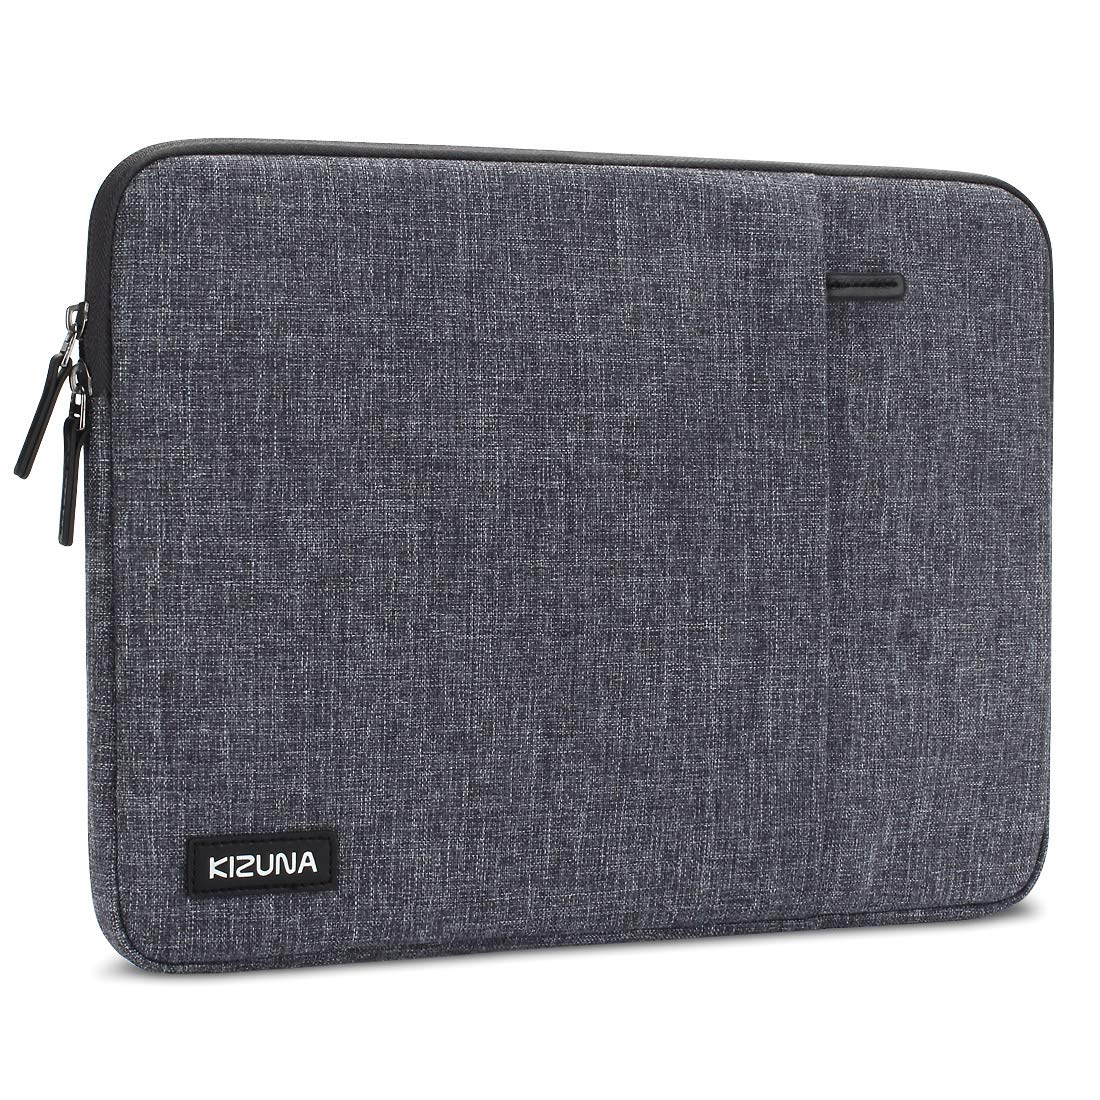 KIZUNA Laptop Sleeve Case 11 Inch Bag Water-Resistant Notebook for MacBook Air/Surface Pro 3 4/12 ThinkPad X1 Tablet 2017/Lenovo Yoga 720/13 Huawei MateBook X/13 MacBook Pro Touch Bar/Chromebook AB303-11B_CA